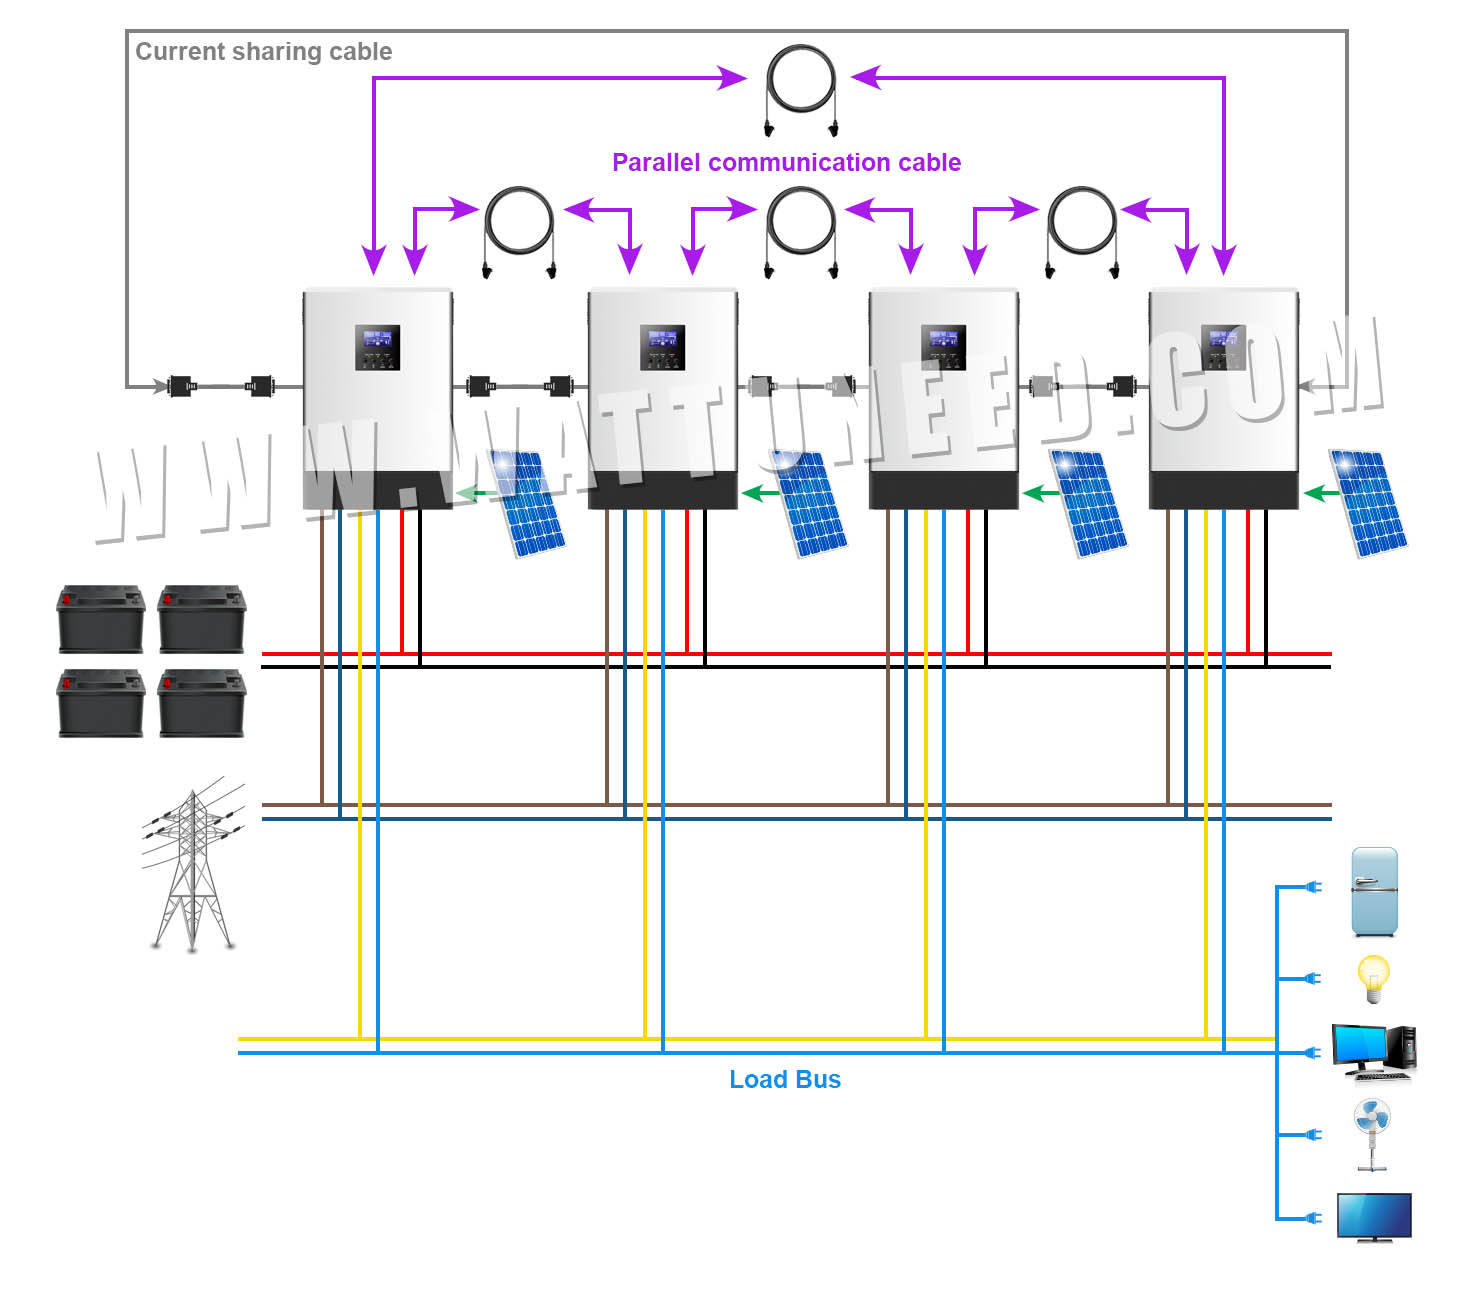 Wks 5kva 48v Inverter Circuit 5000 Watt Power Schematic Grid Tie Micro Gel Mise En Parrallele Onduleur Mks